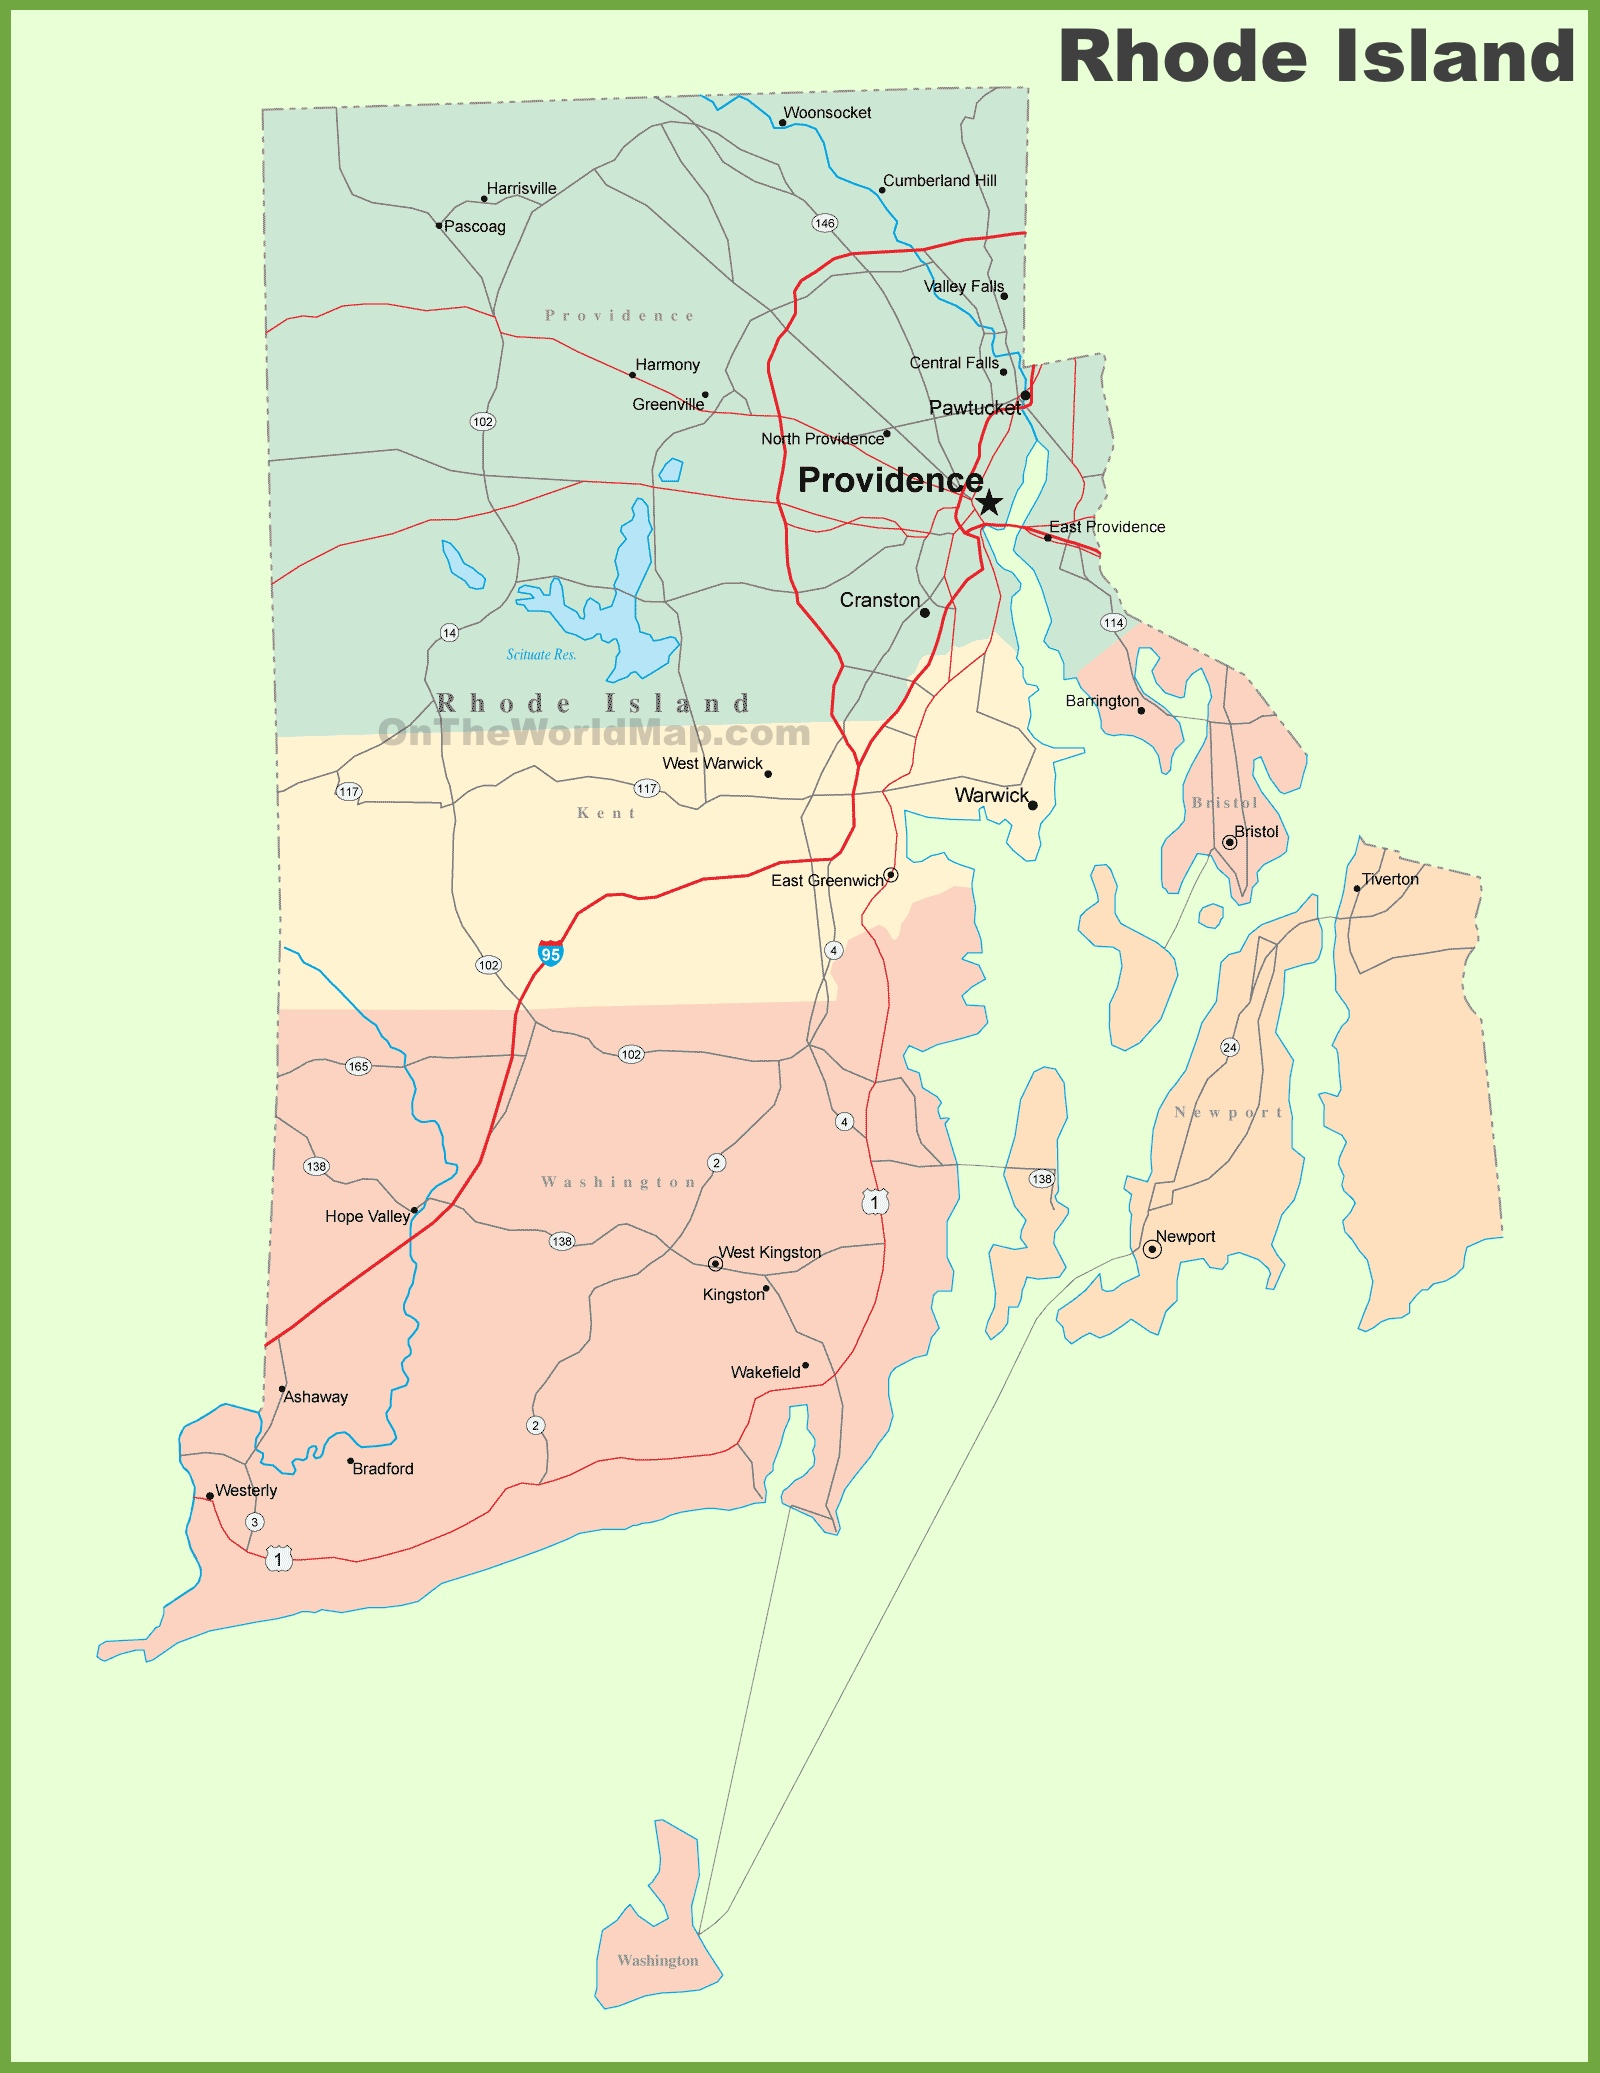 Road Map Of Rhode Island With Cities